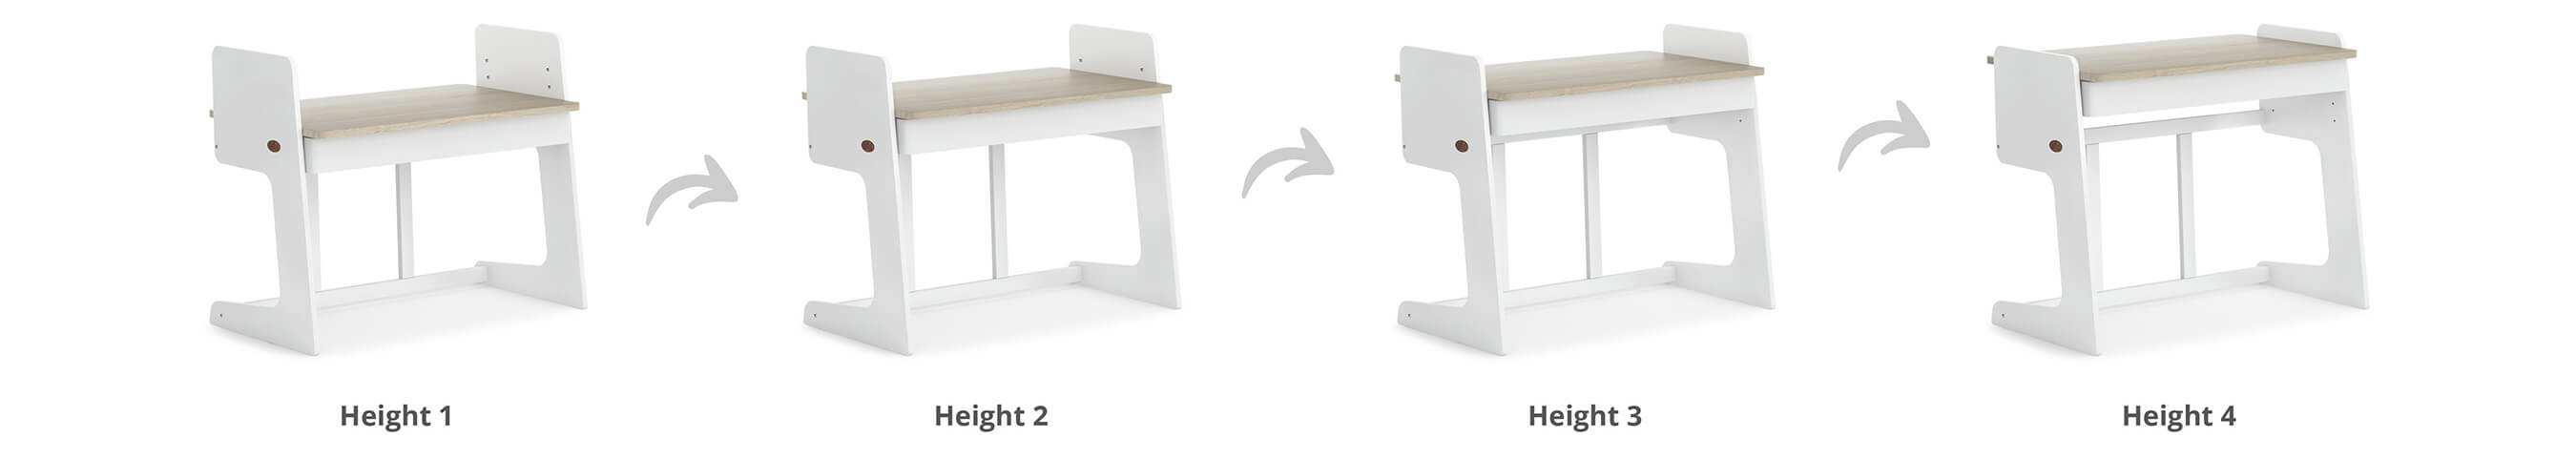 Feature_Highlight_CMS_Blocks_Height_Adjustable_Desks_and_Chairs_January_2021-023